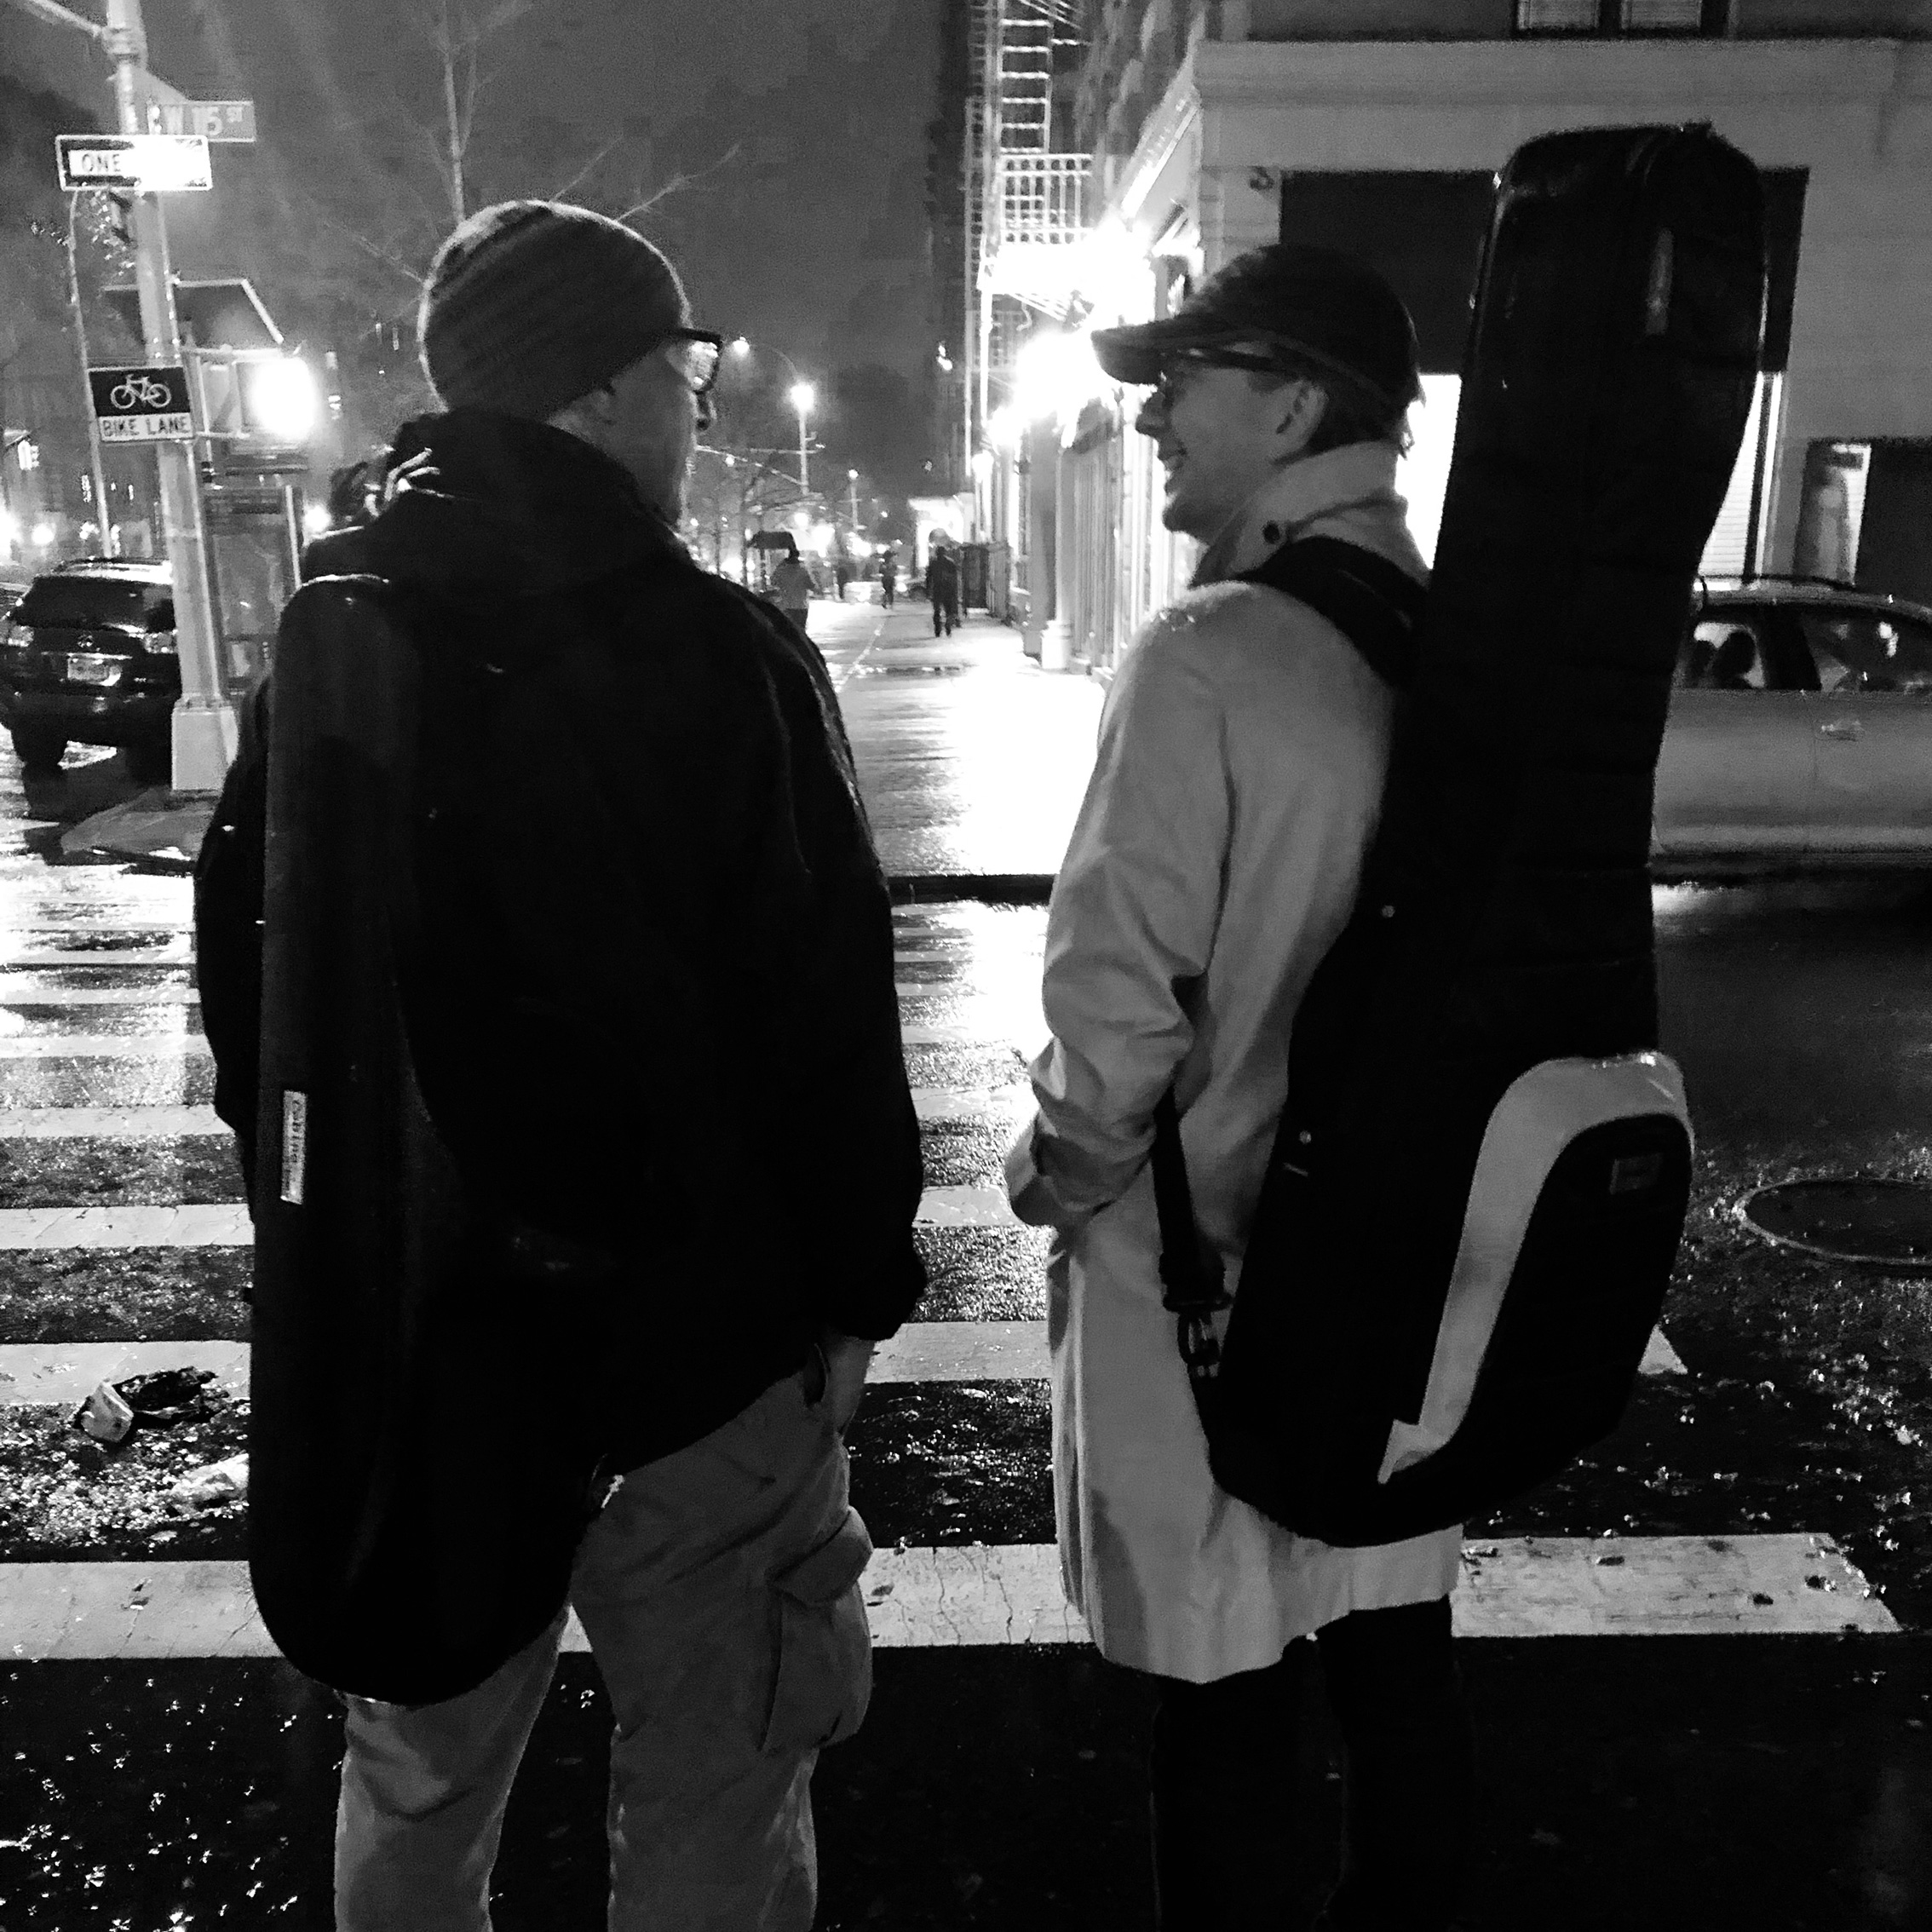 Chester Jankowski and Jesse Ostrow in New York after playing a jazz gig.